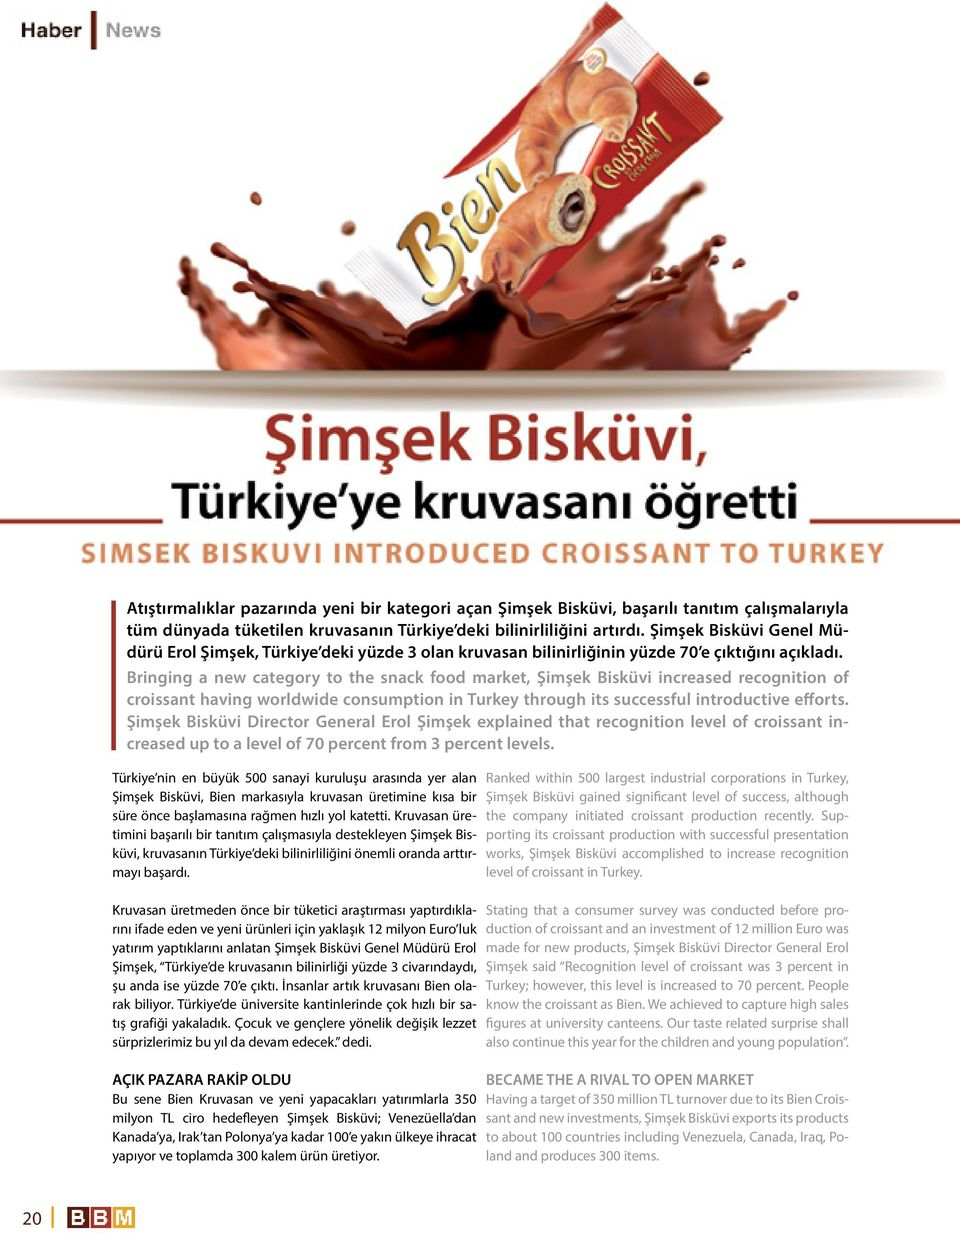 Bringing a new category to the snack food market, Şimşek Bisküvi increased recognition of croissant having worldwide consumption in Turkey through its successful introductive efforts.